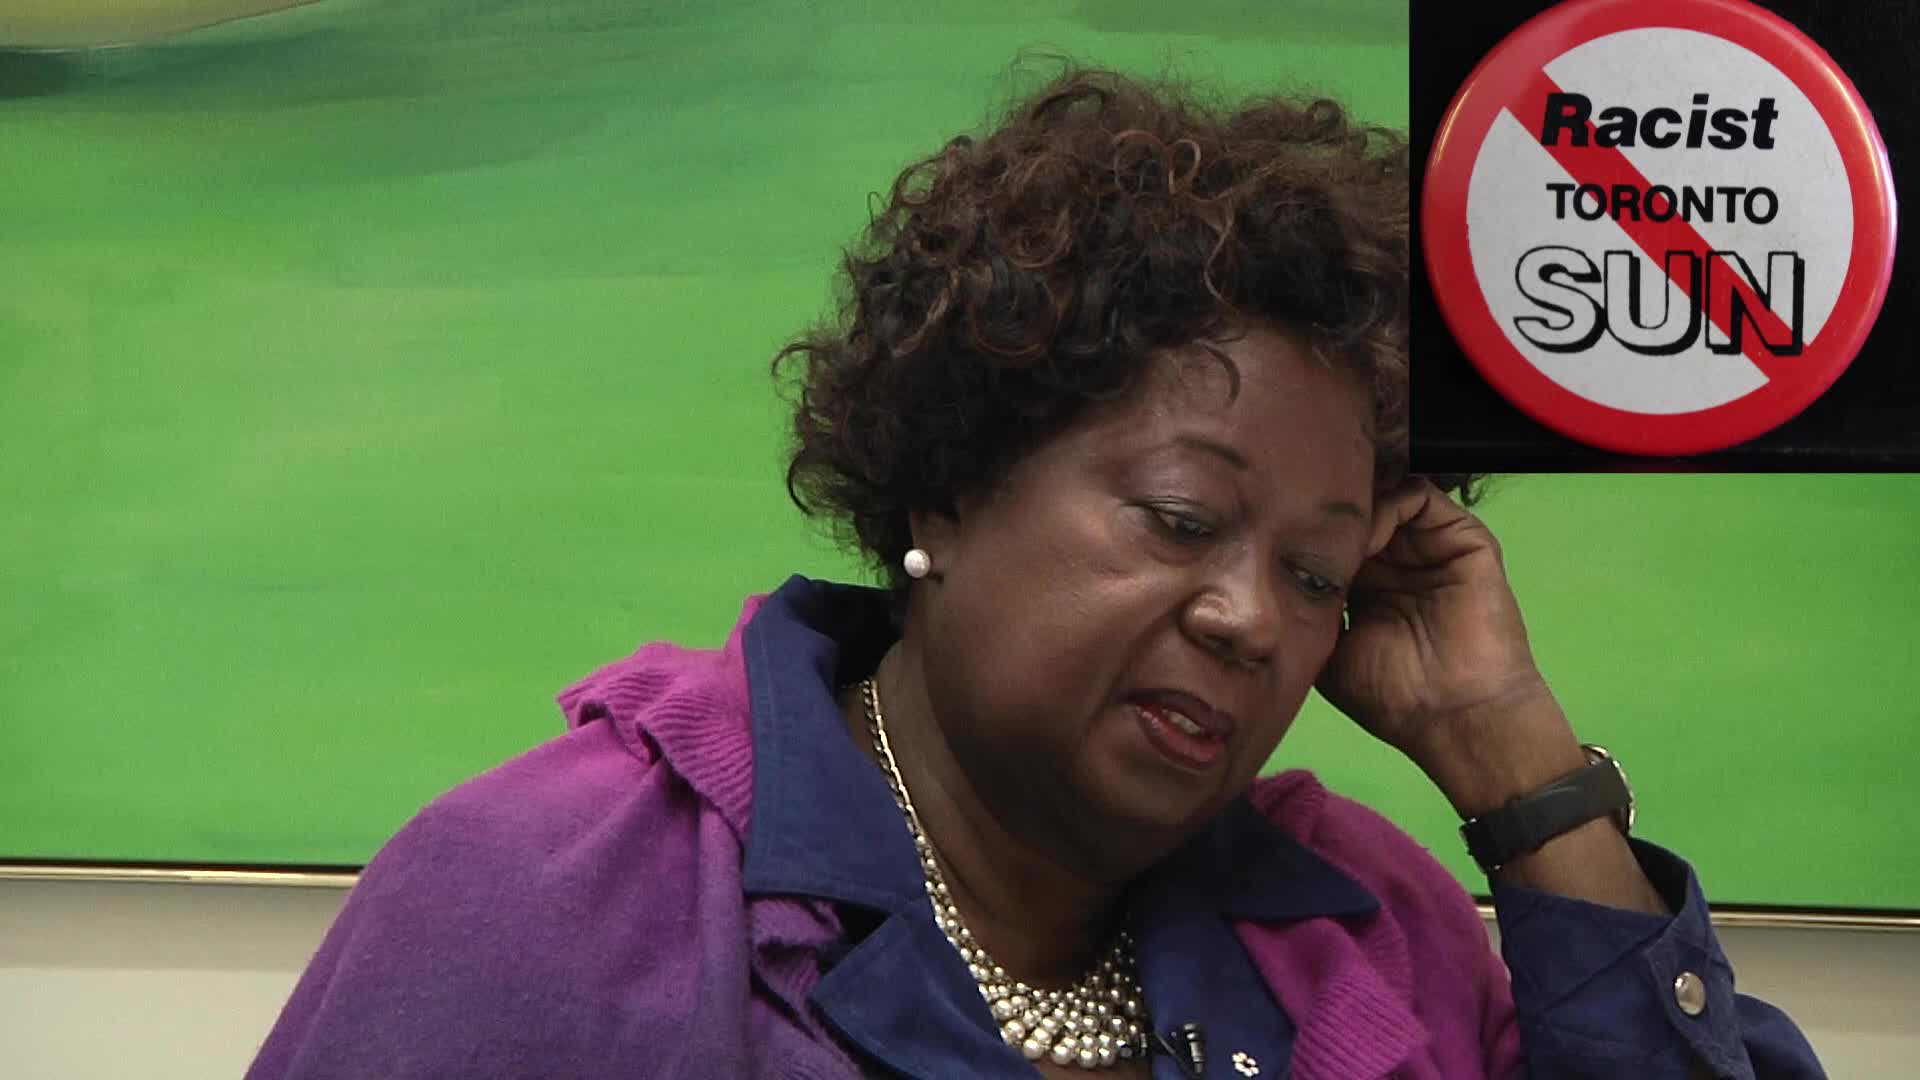 Jean Augustine interview: Racist Toronto Sun button